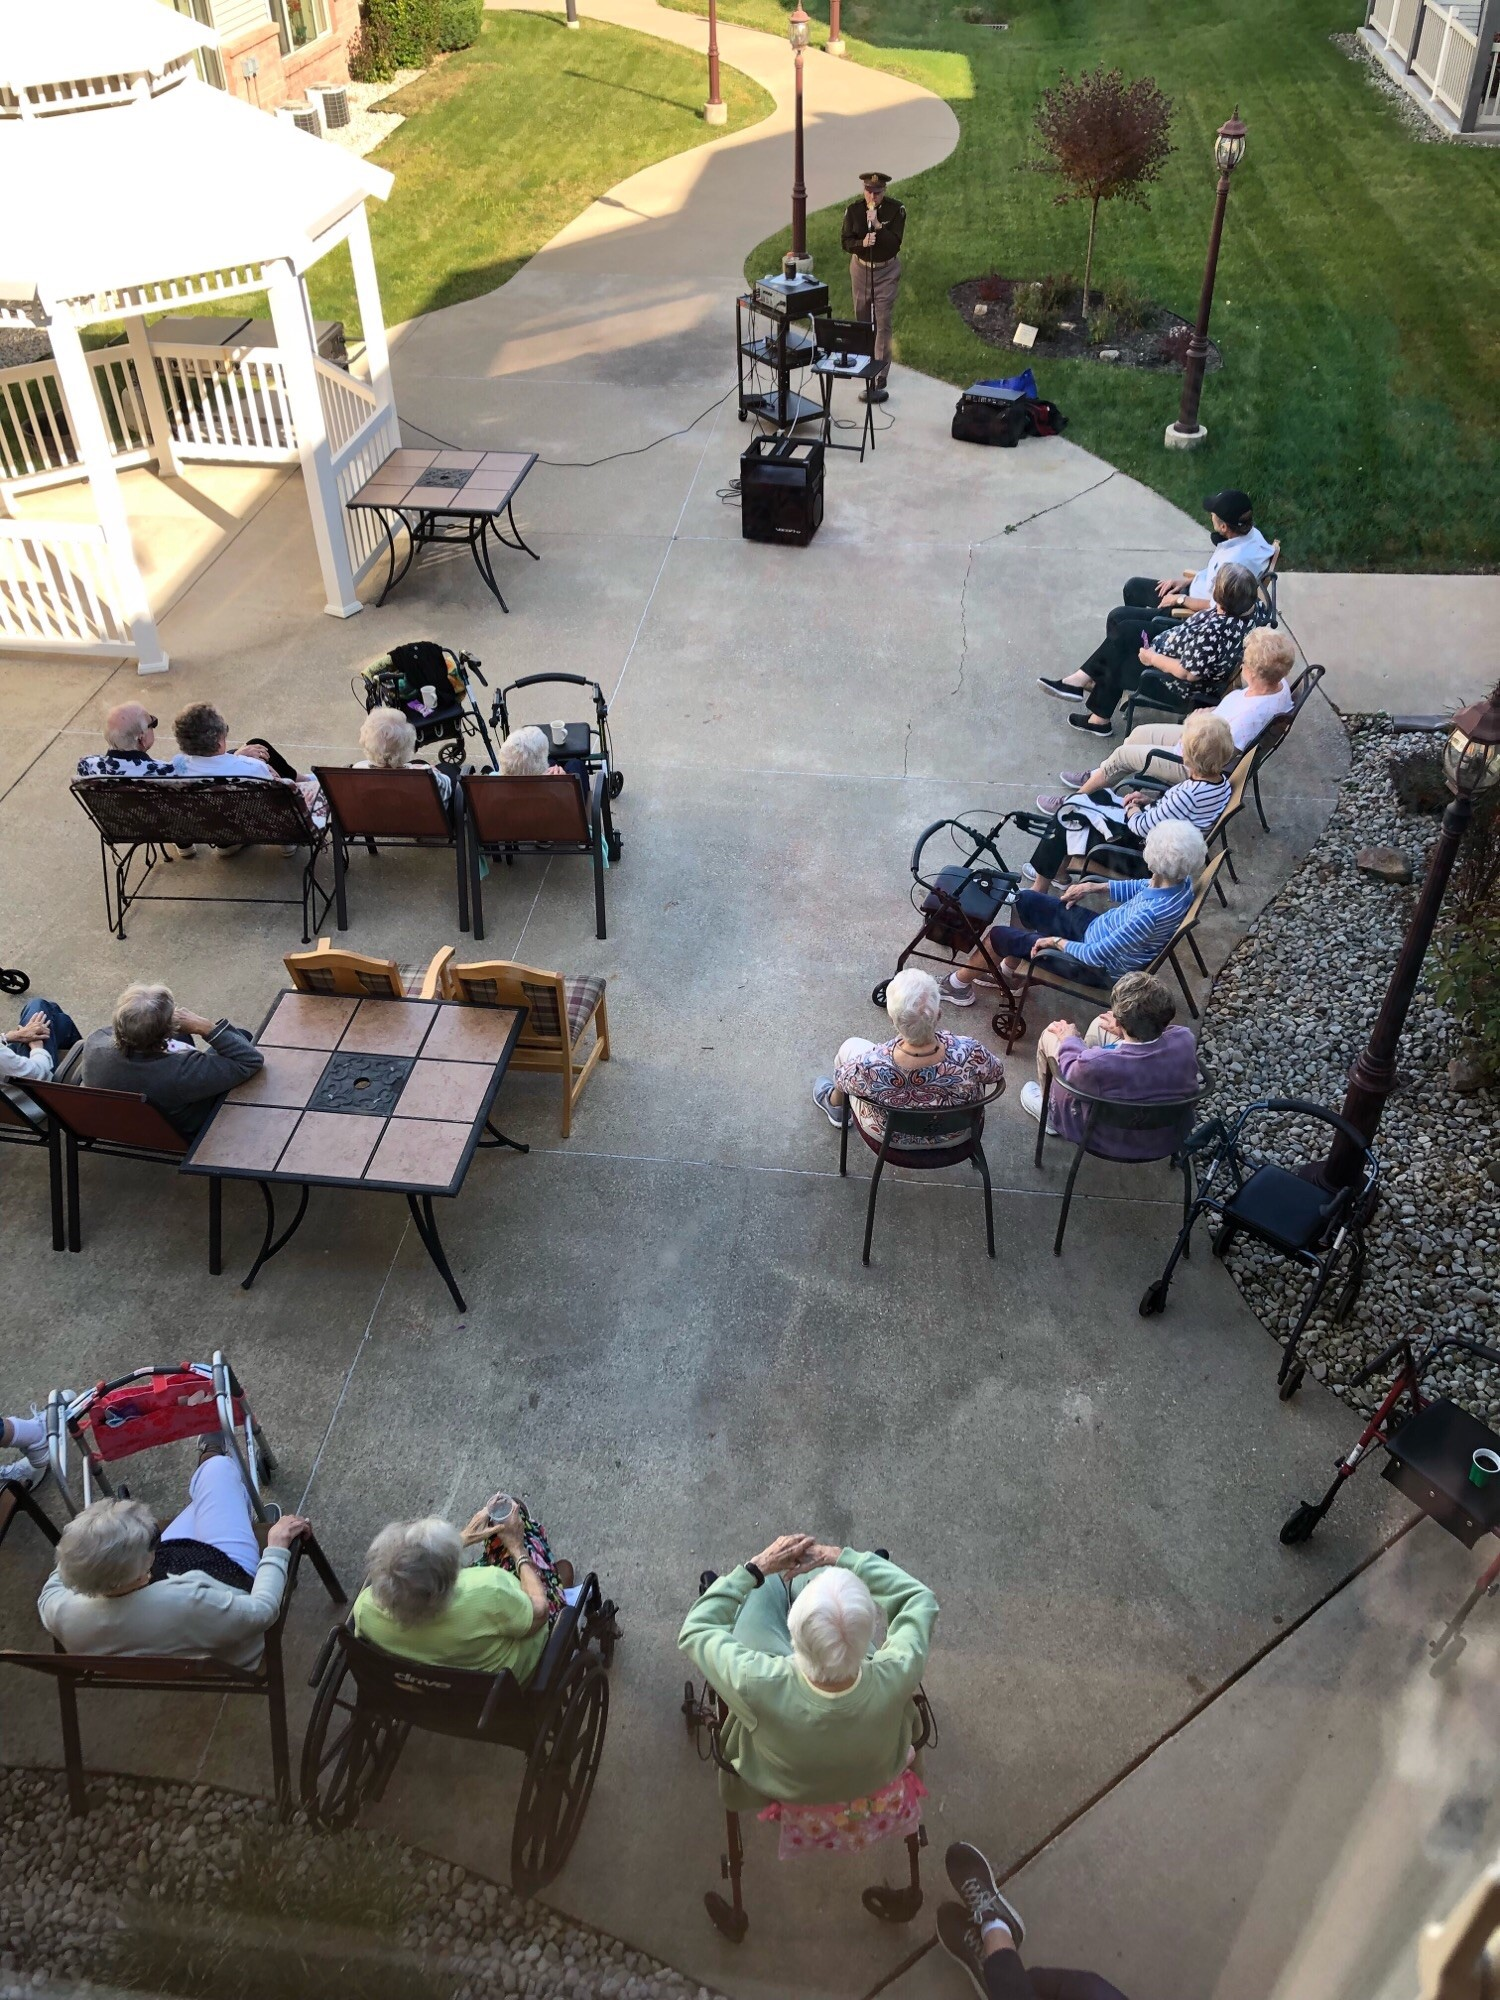 Residents enjoying the entertainment on a Fall Afternoon. At least we didn't have to wear winter coats.